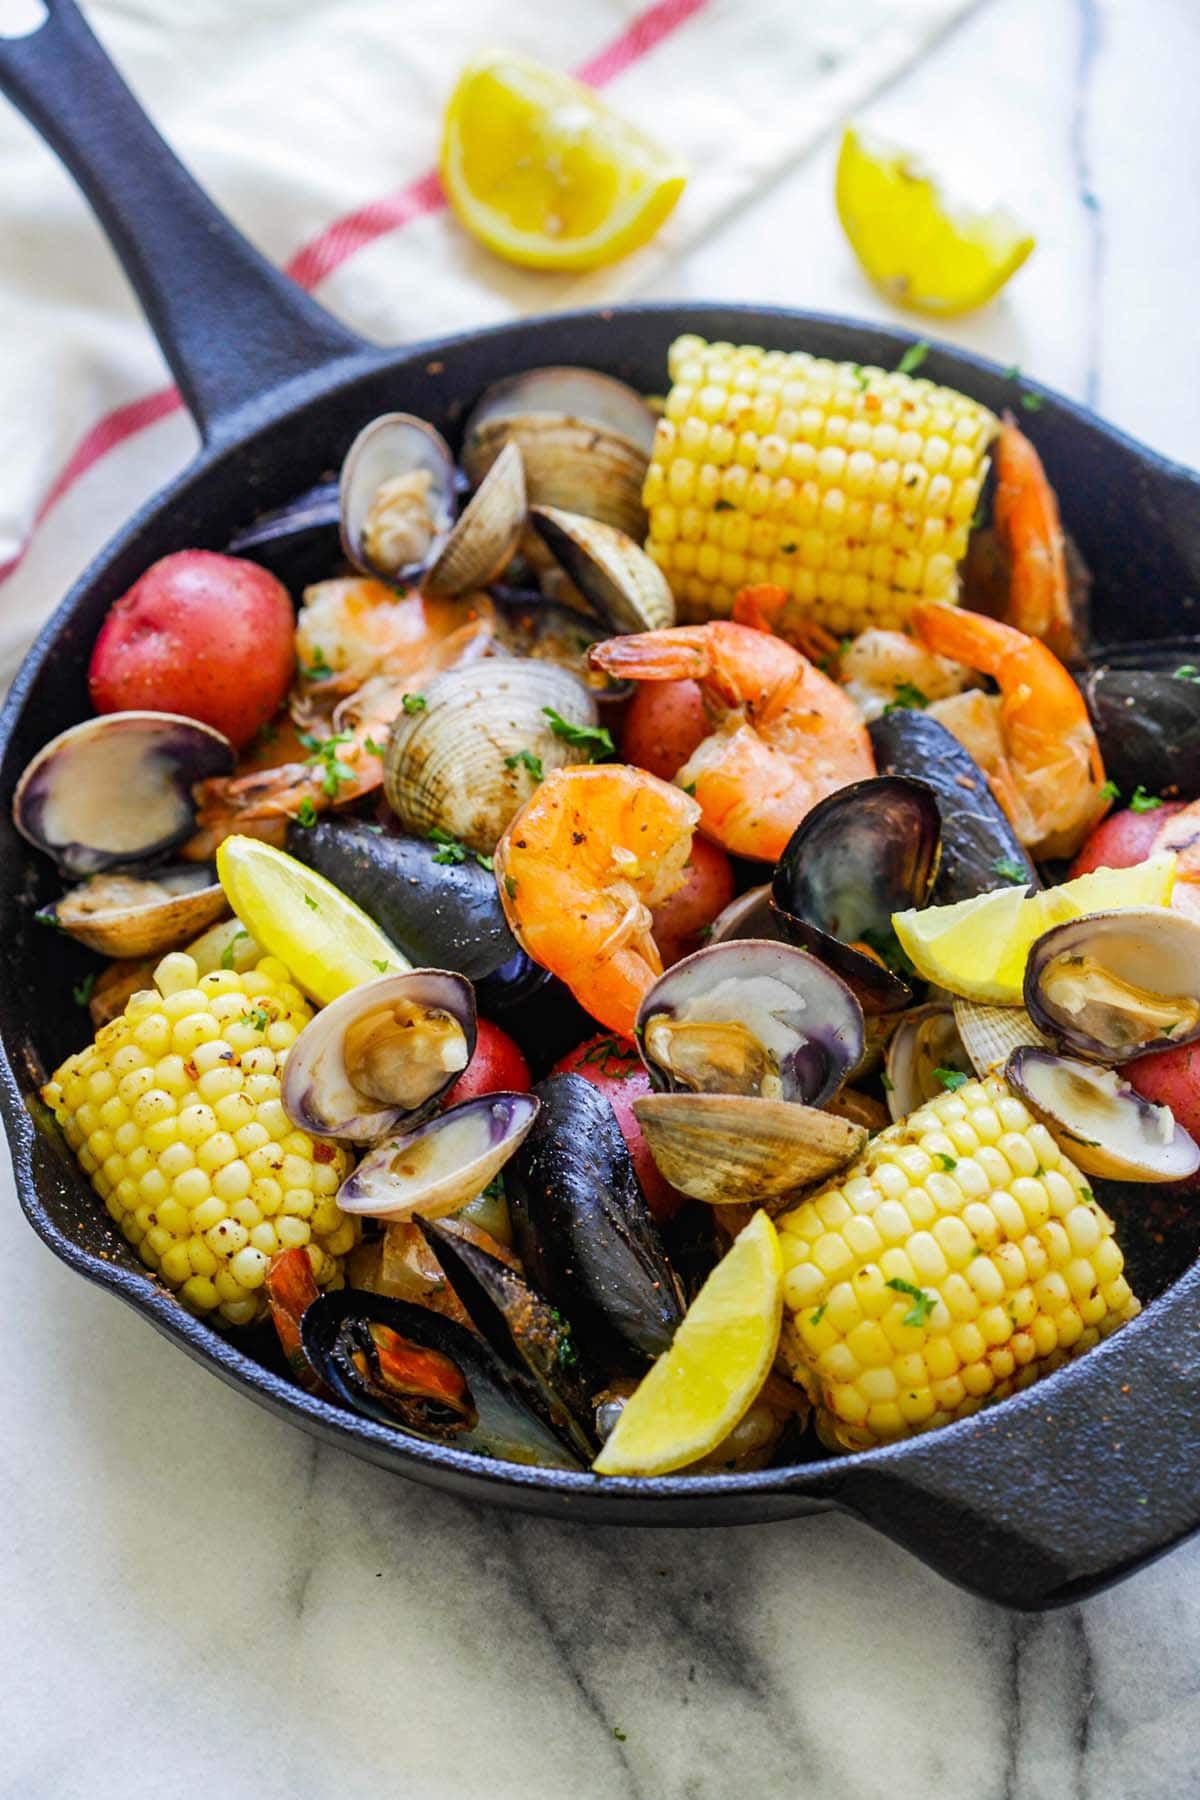 Easy clambake (clam boil) in a skillet with clams, mussels, shrimp, corn and potatoes.